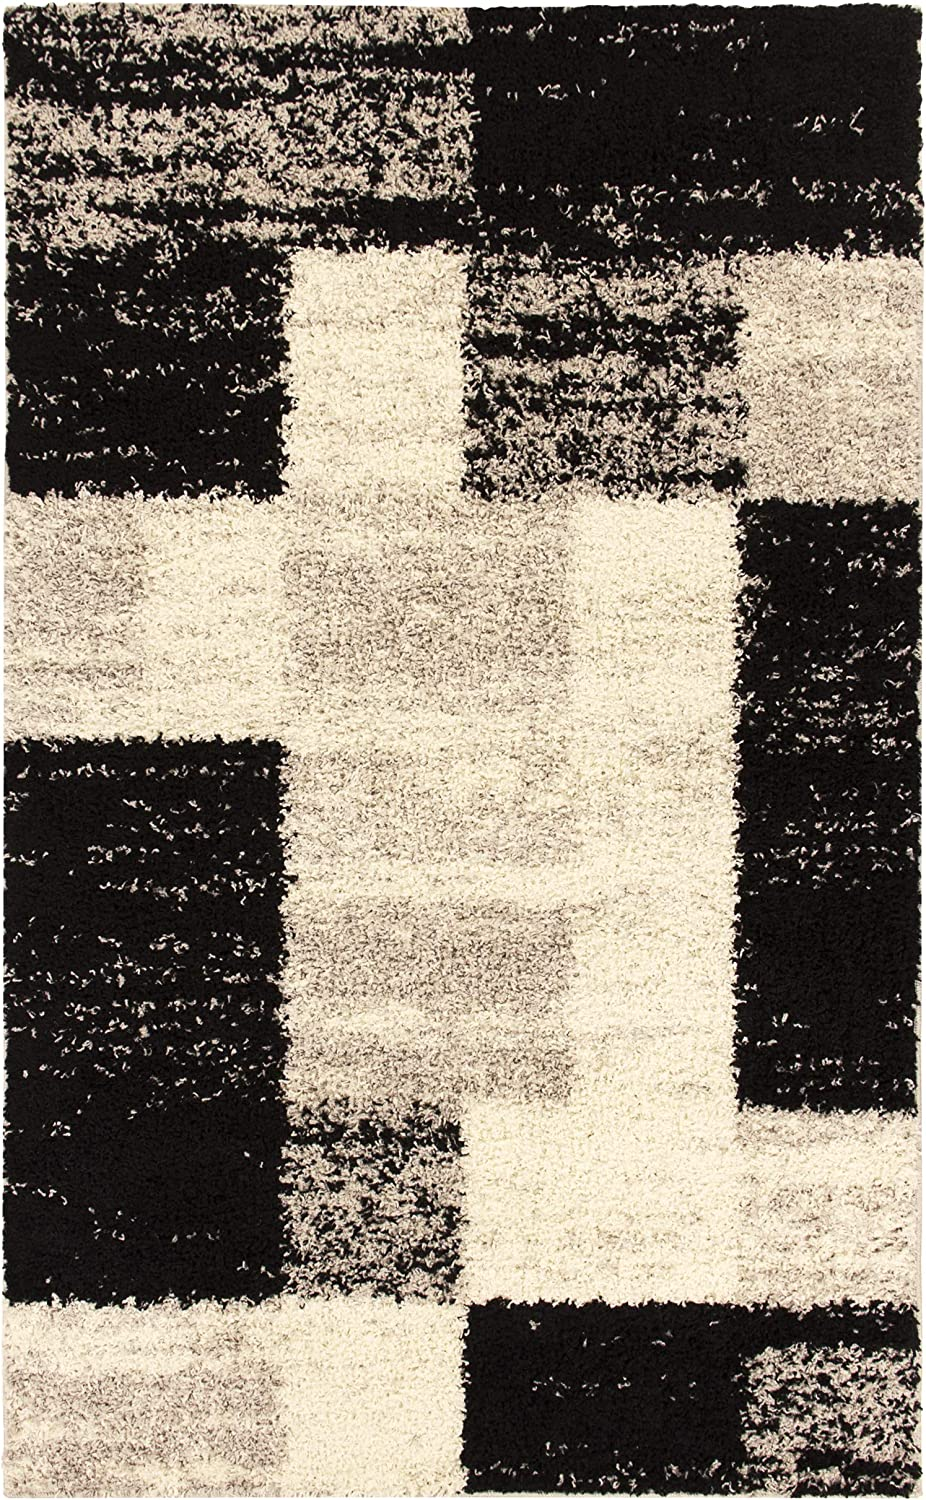 SUPERIOR Tufted Bombing free shipping Quality inspection Shag Transitional Plush G Rug Indoor Collection